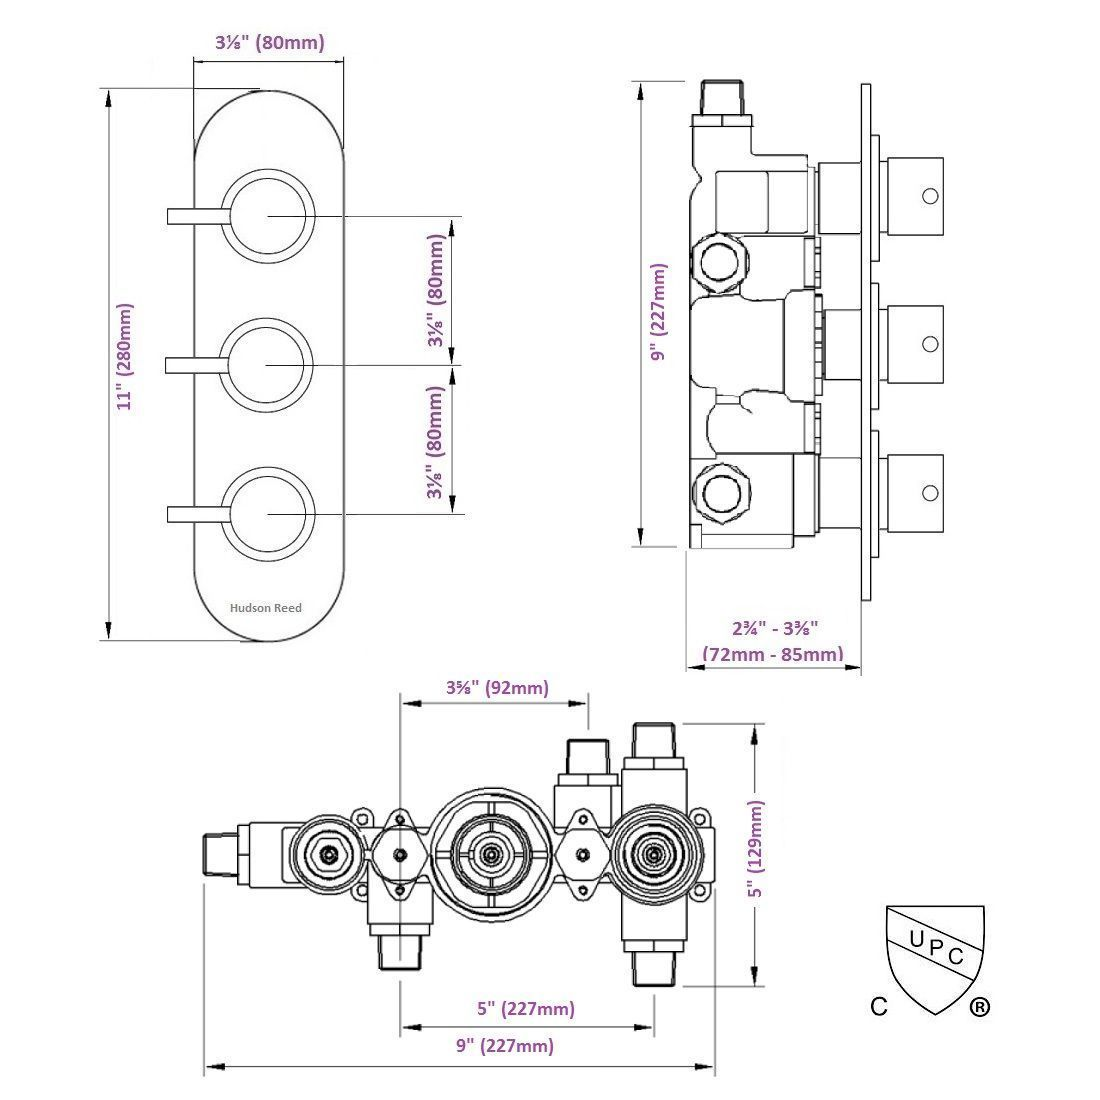 hight resolution of quest concealed 3 outlet triple with diverter thermostatic shower valve racetrack plate